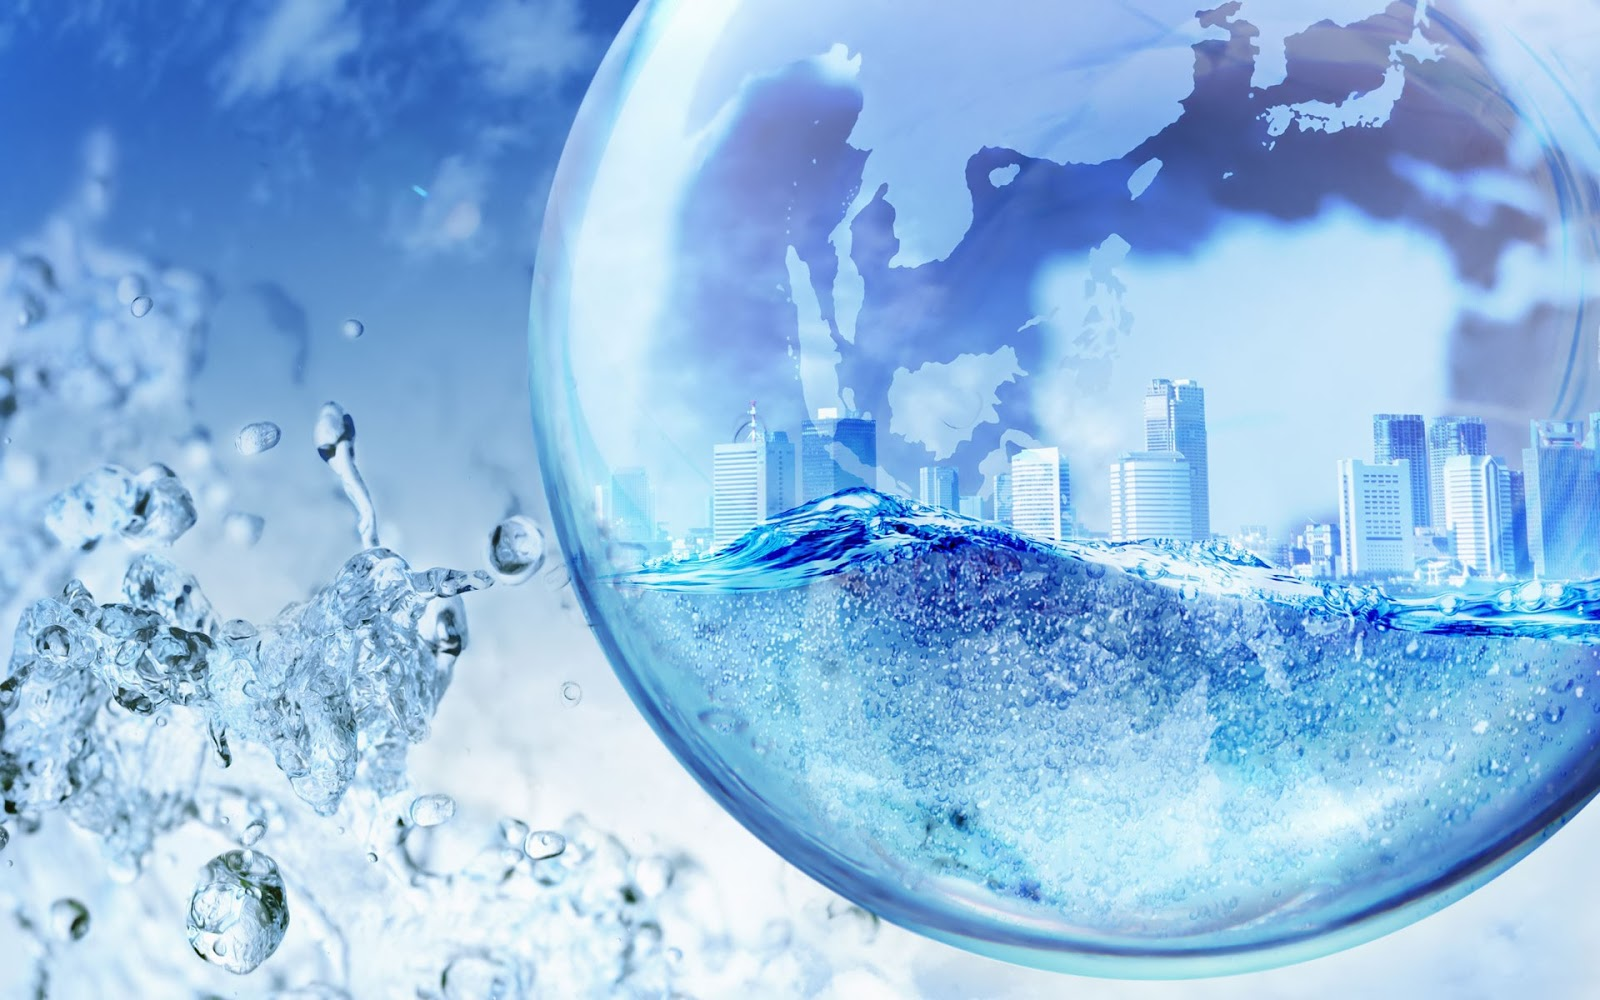 Abstract hd wallpapers - Water wallpaper hd download ...